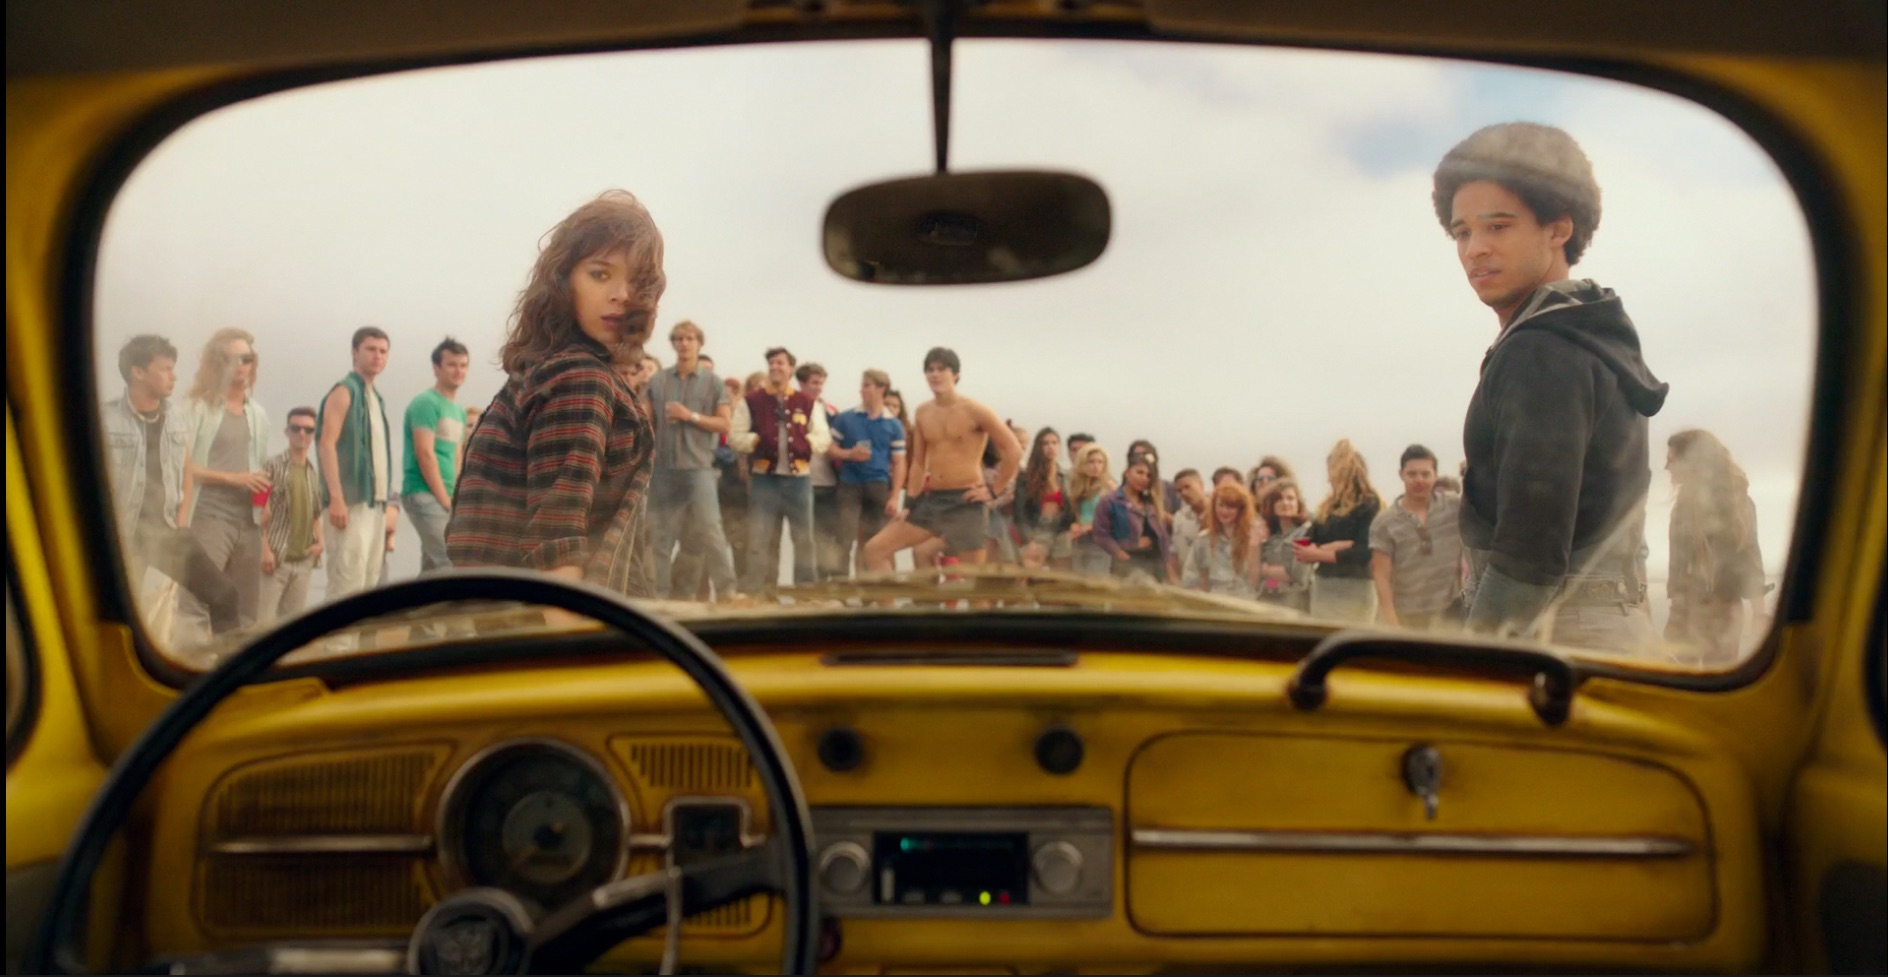 Charlie, Memo, and a group of teenagers, viewed through the windshield of Bee's car-mode.